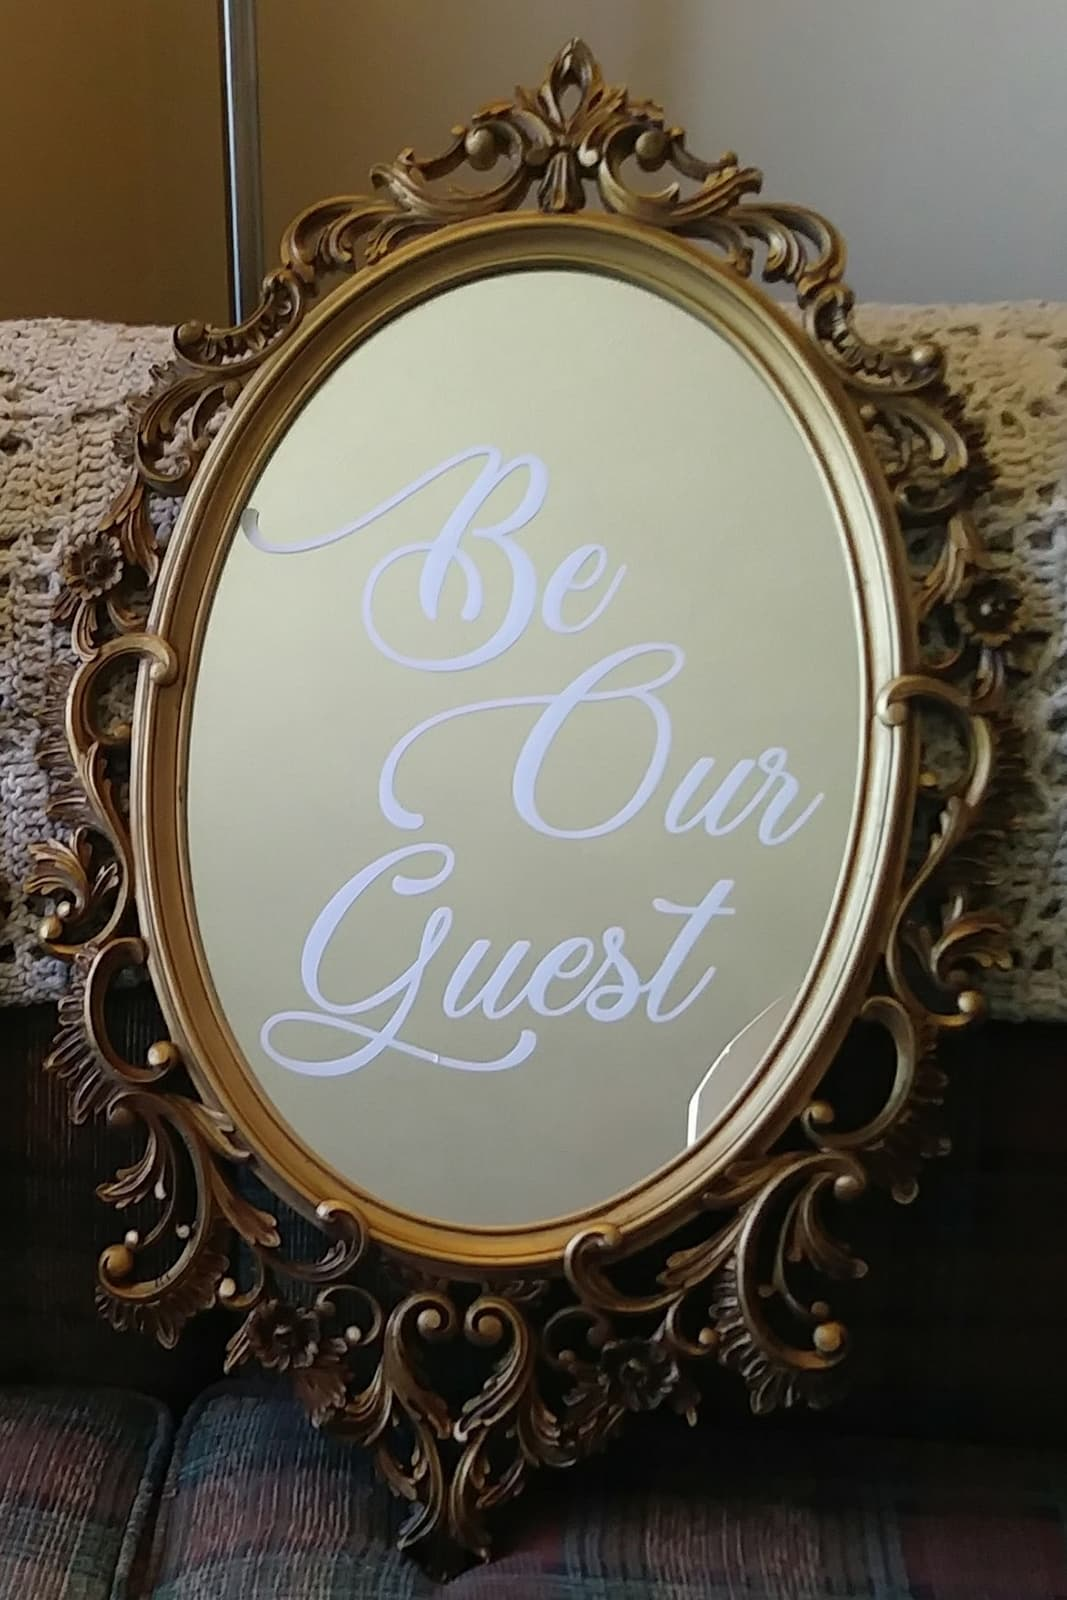 Ornate Be Our Guest Mirror - $40.00